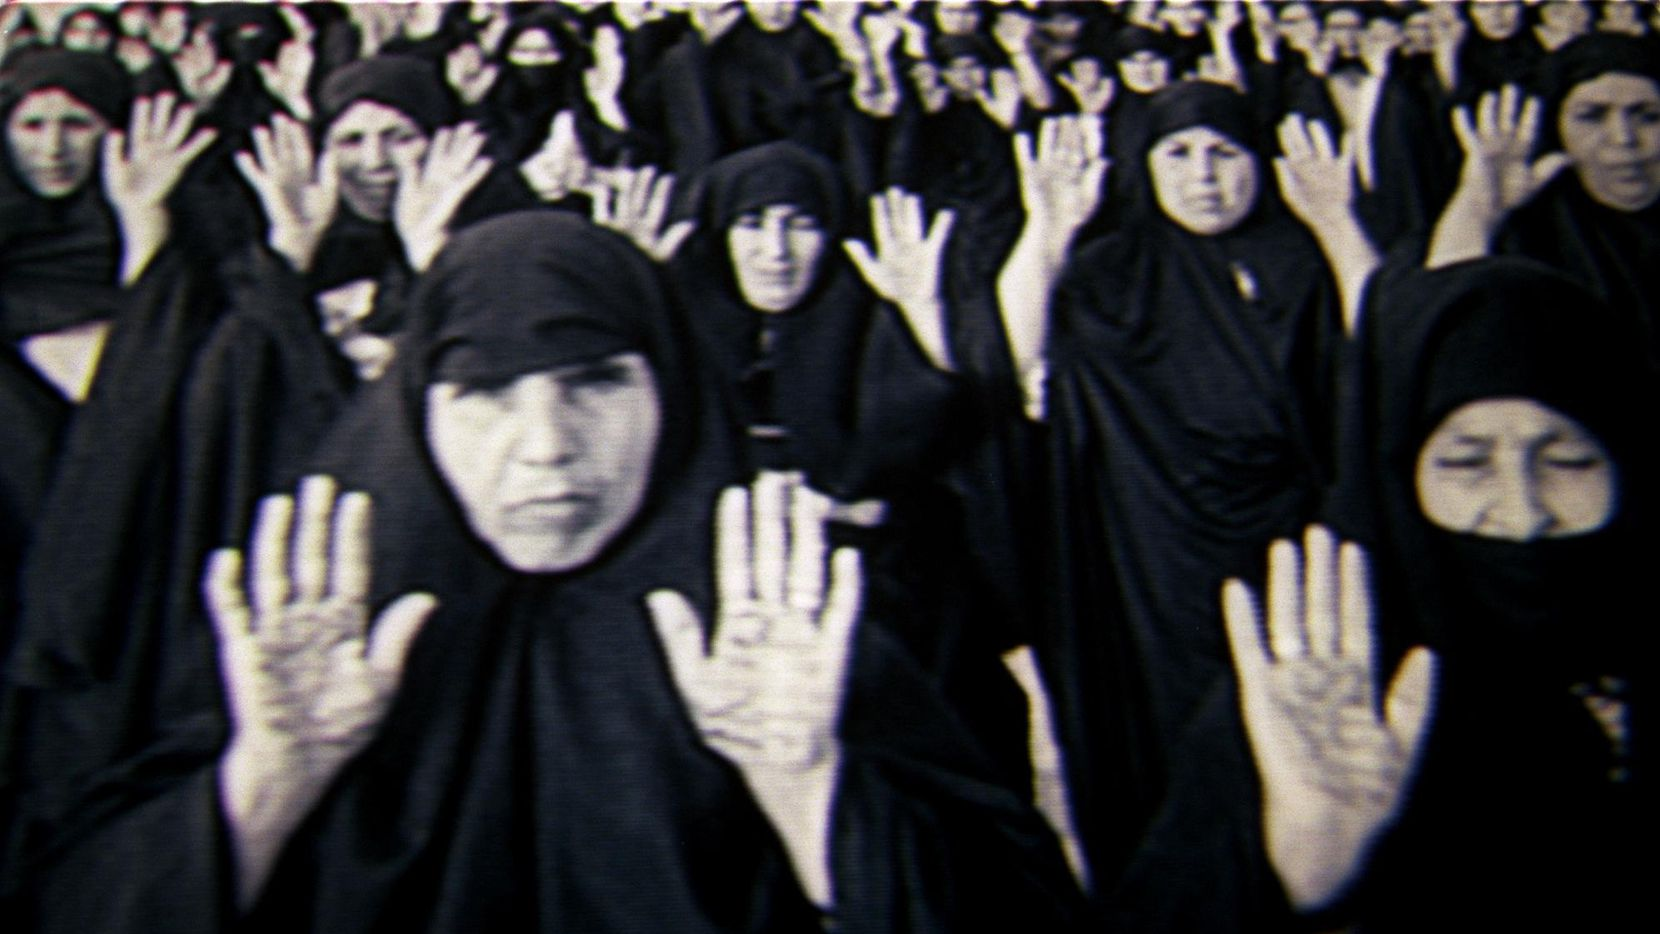 A clip of artist Shirin Neshat's video installation 'Rapture, 1999' at Site Santa Fe in Santa Fe, N.M., was shown at the exhibition of her work at the Modern Art Museum of Fort Worth.